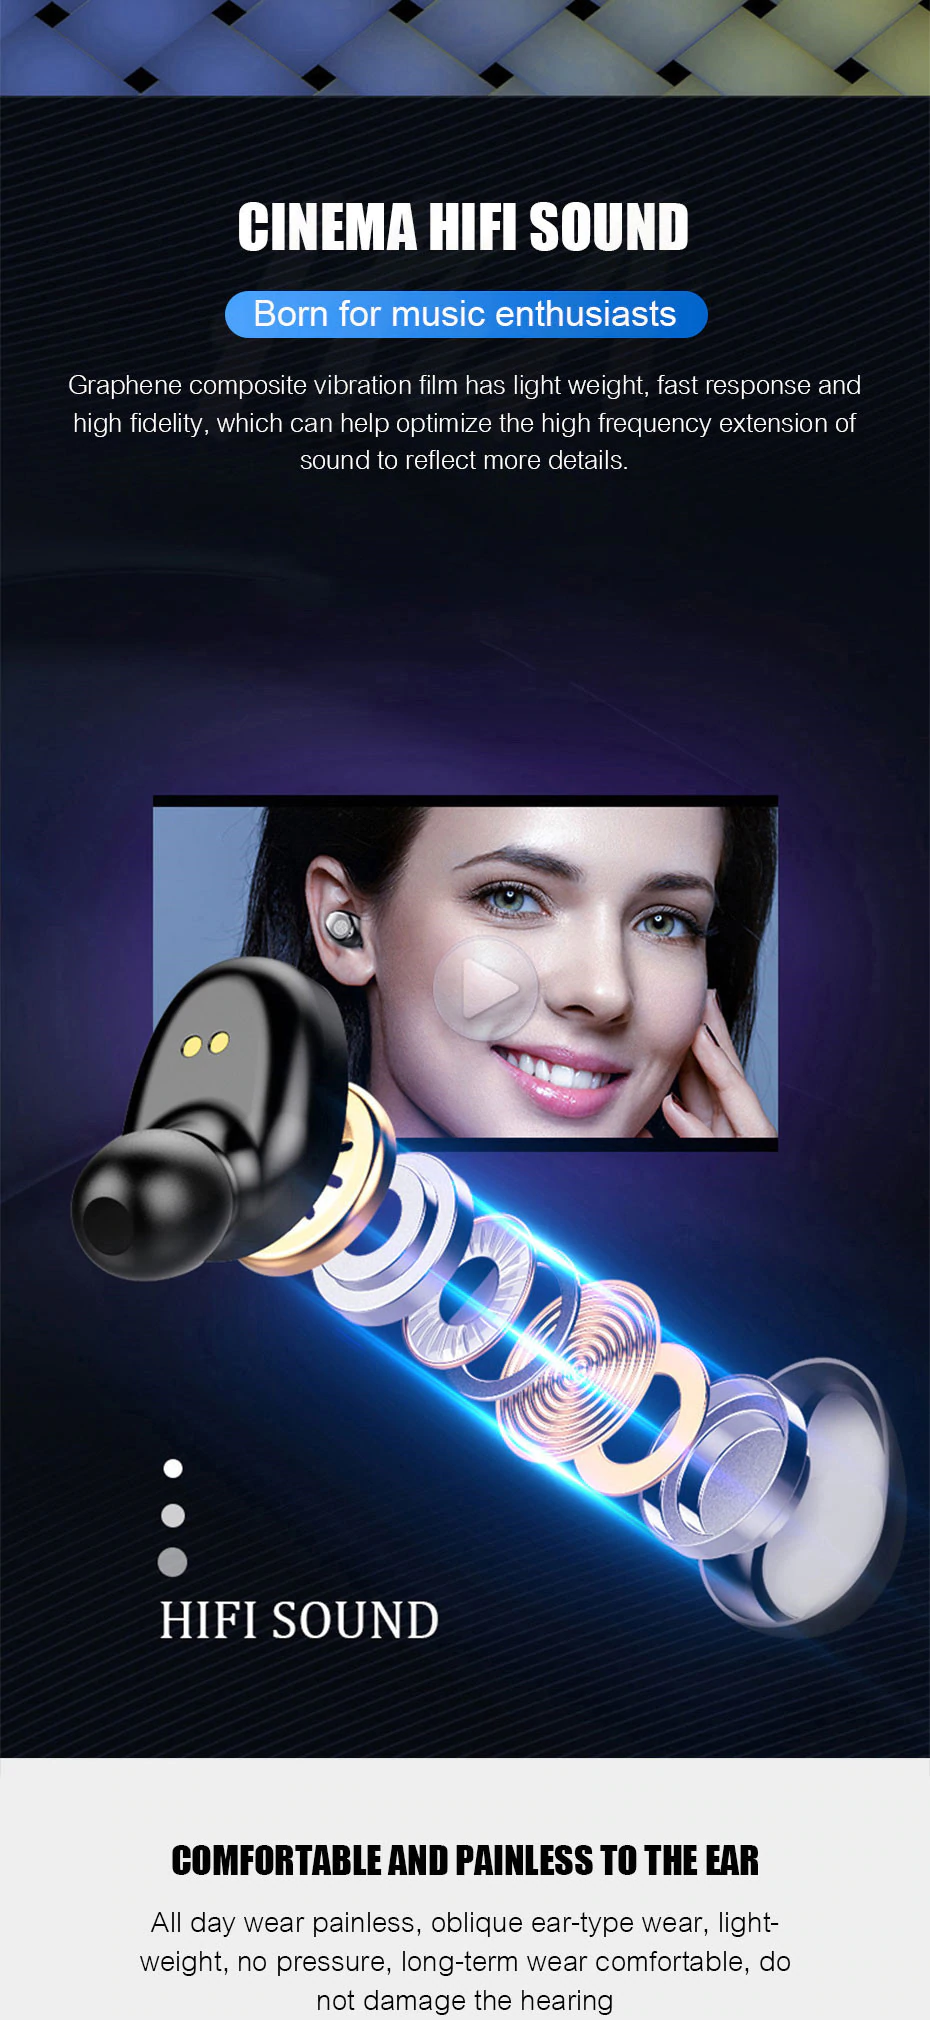 V5.0 Touch Wireless Earbuds fantastic surround sound quality Stereo sports sport smartphones smartphone smart phone powerbanks PowerBank power bank phones phone mobilephone mobile phone microphone iphones iPhone in-Ear headsets Headset headphones Headphone gyms gym For ears earpods earphones earphone earbud ear Bluetooth Android